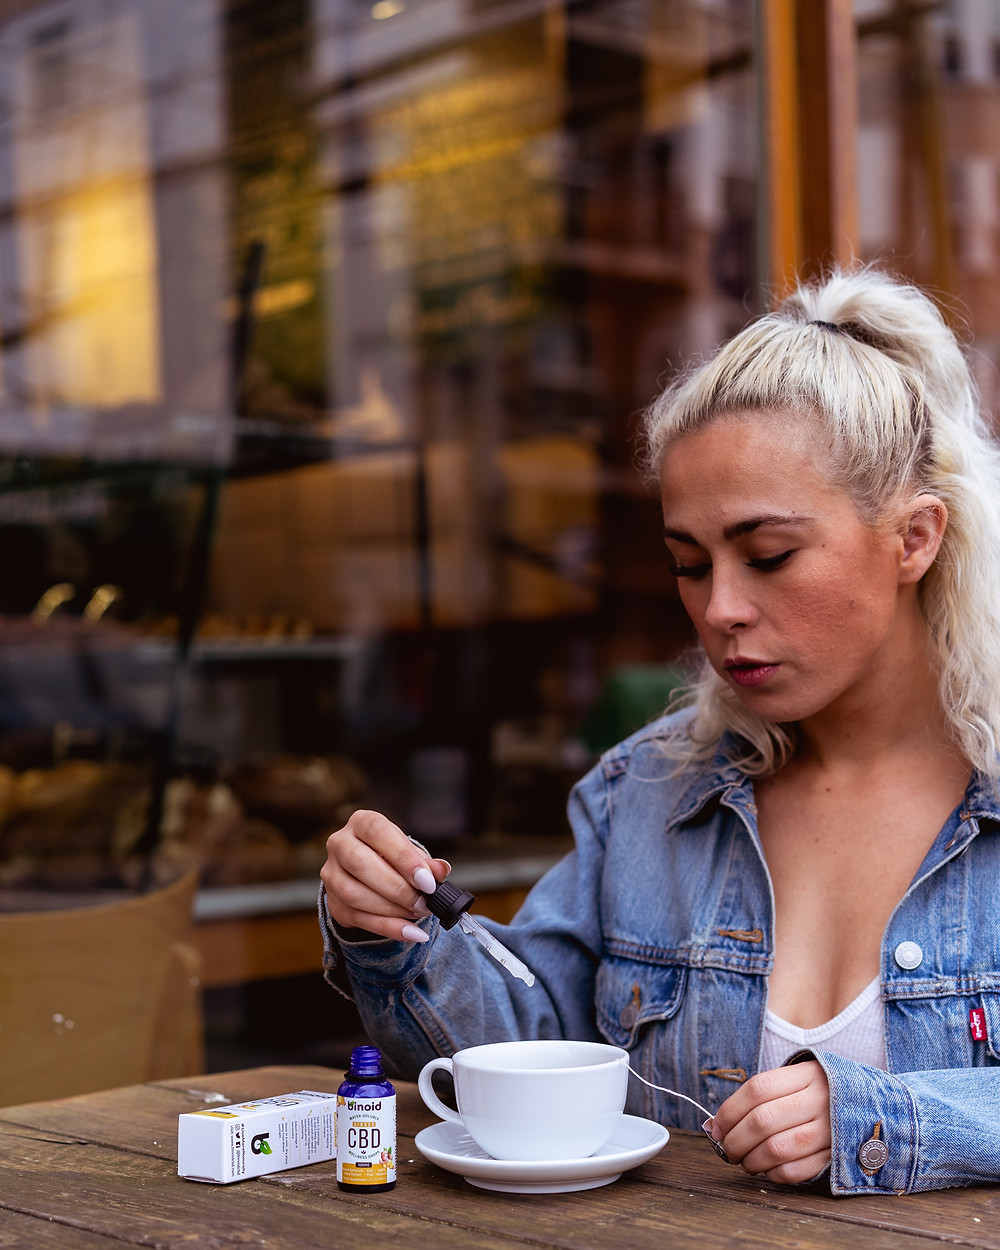 Woman drops CBD into her beverage at a cafe